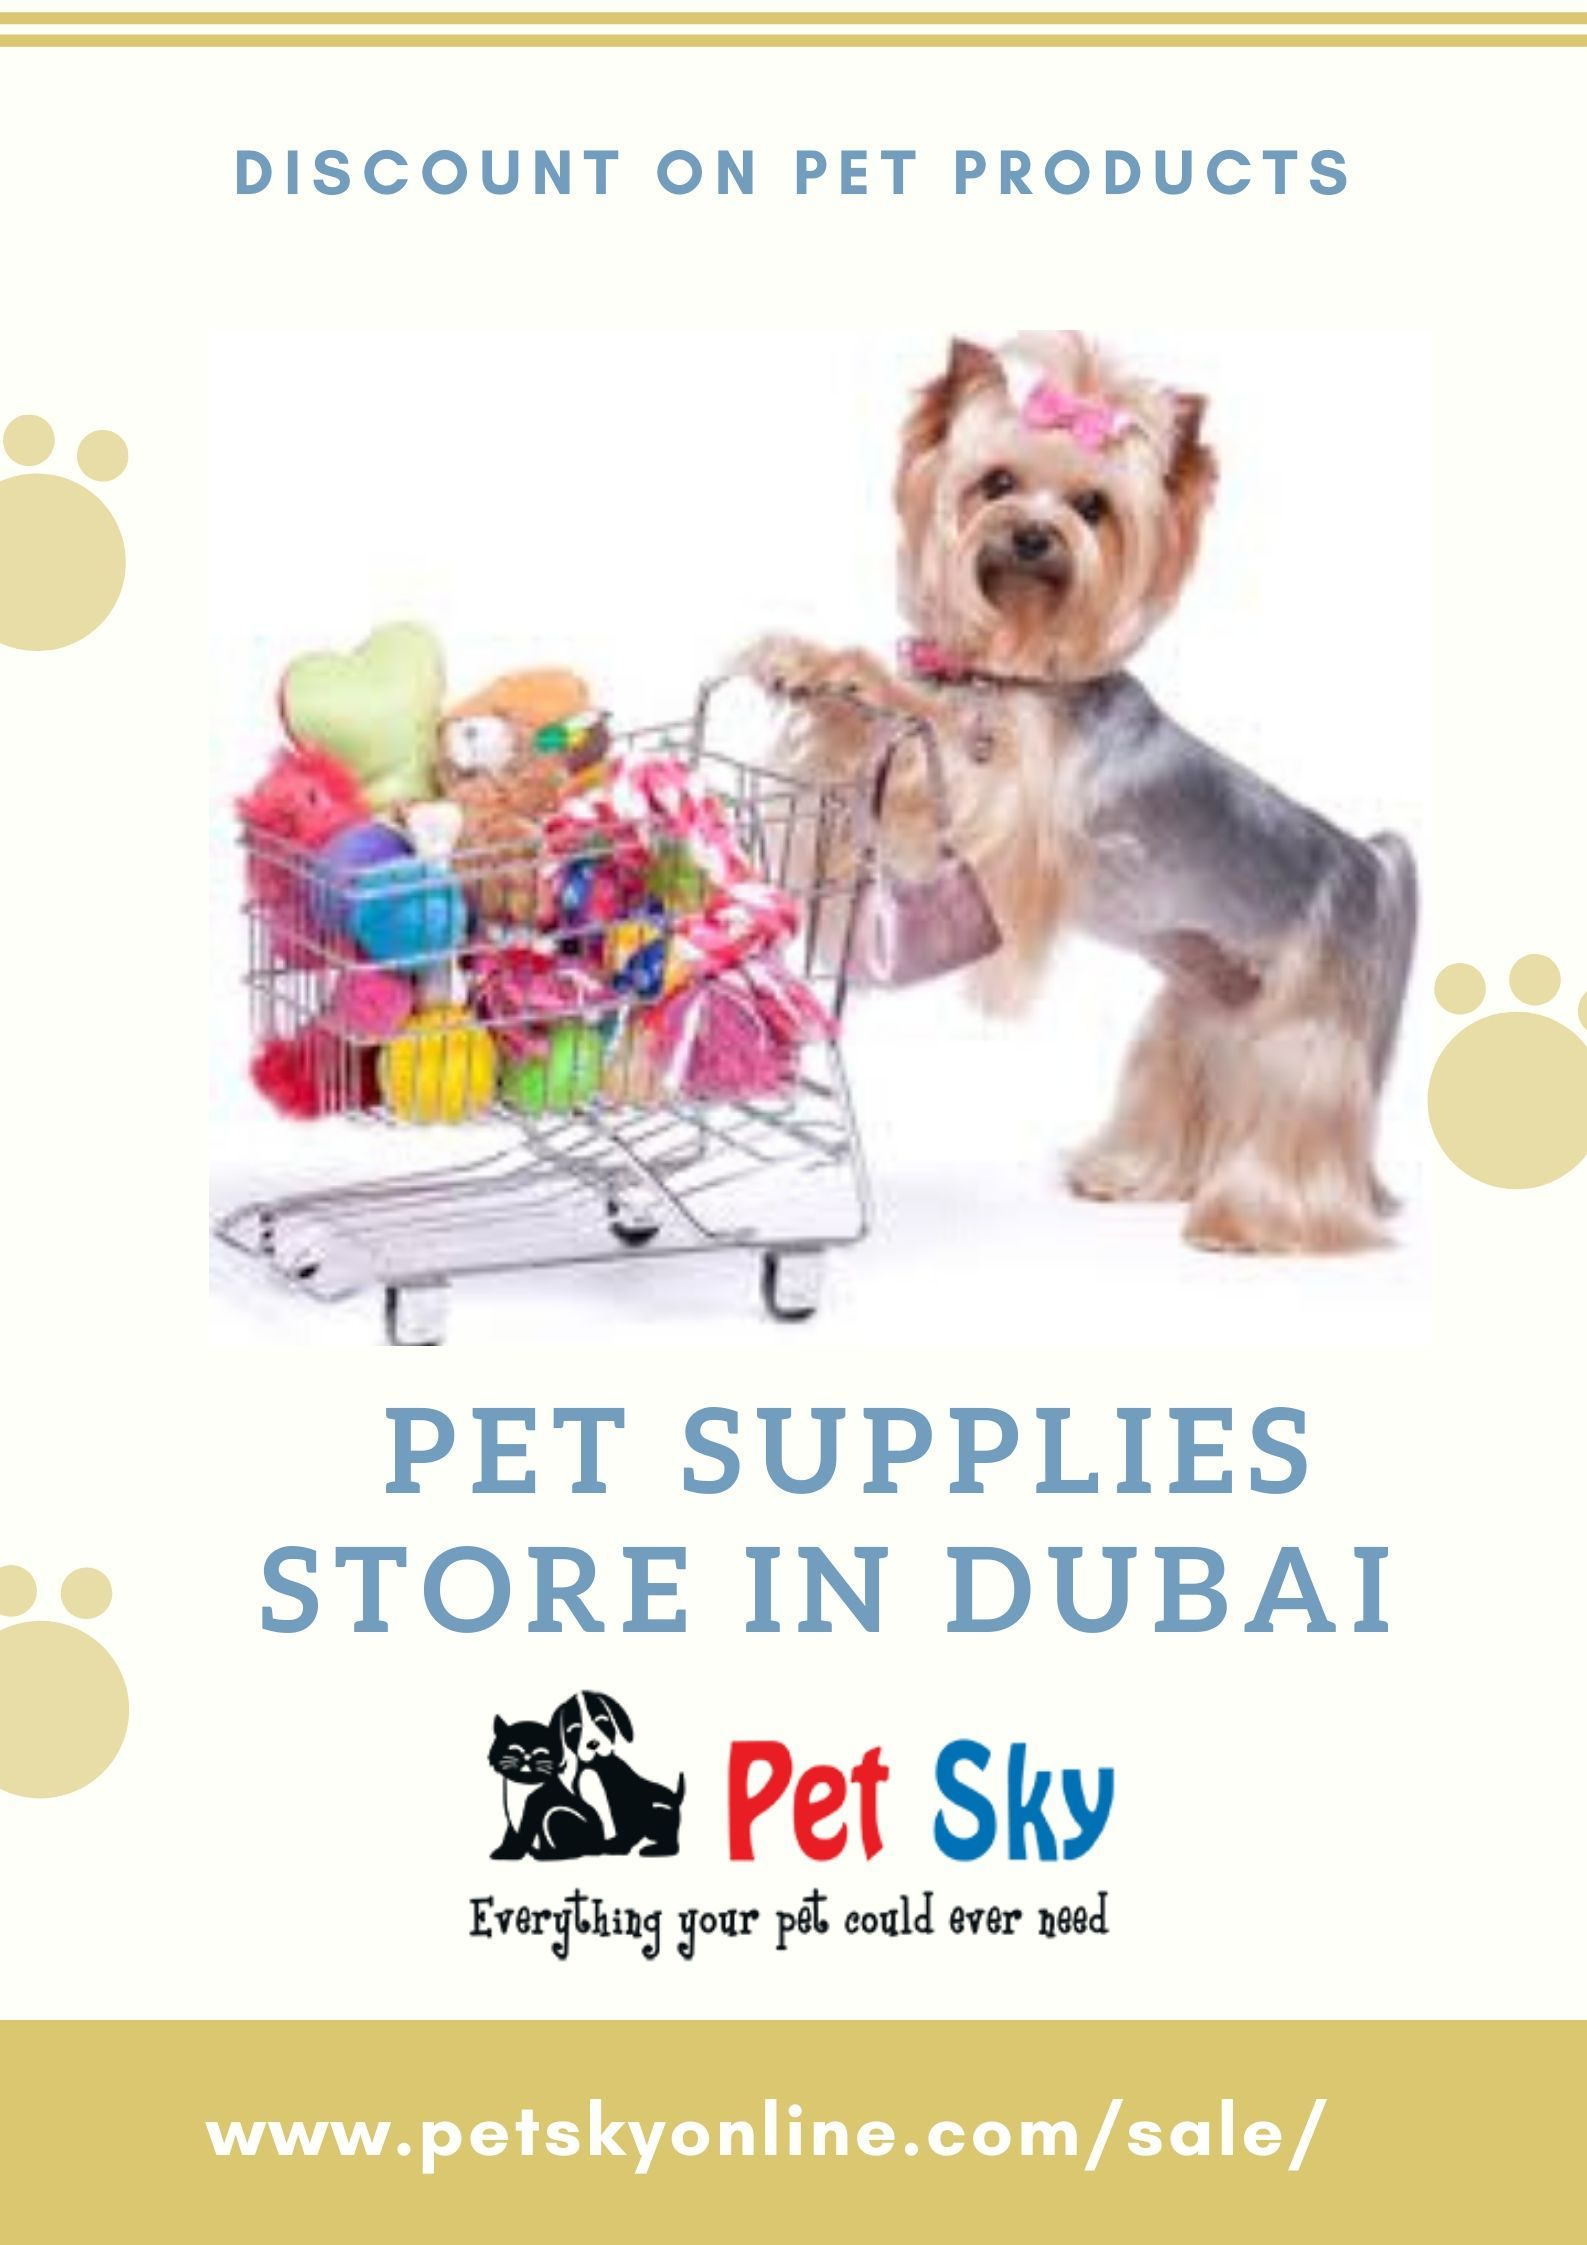 Pet Sky offering a discount on pet products in Dubai. We